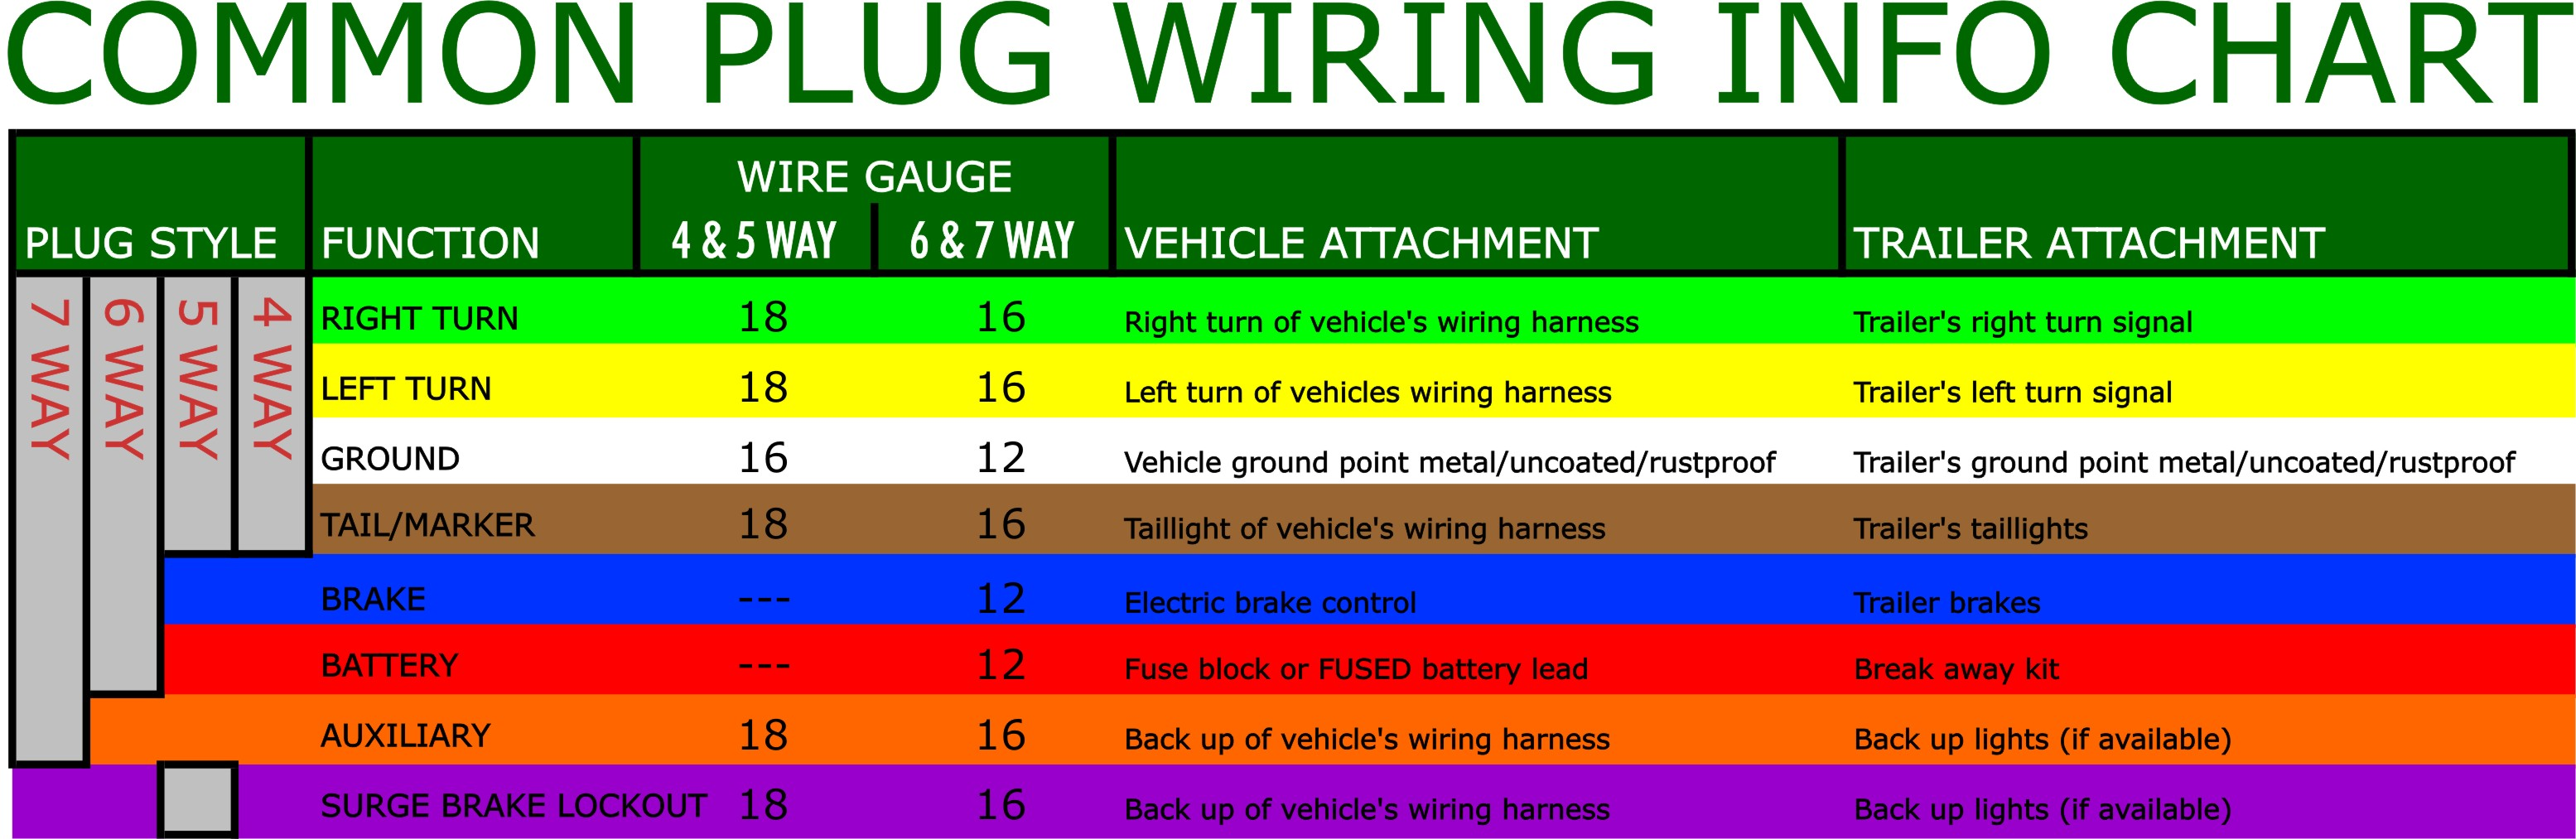 Trailer Wiring Color Code 7 Pin Trailer Wiring Diagram Standard 7 ...